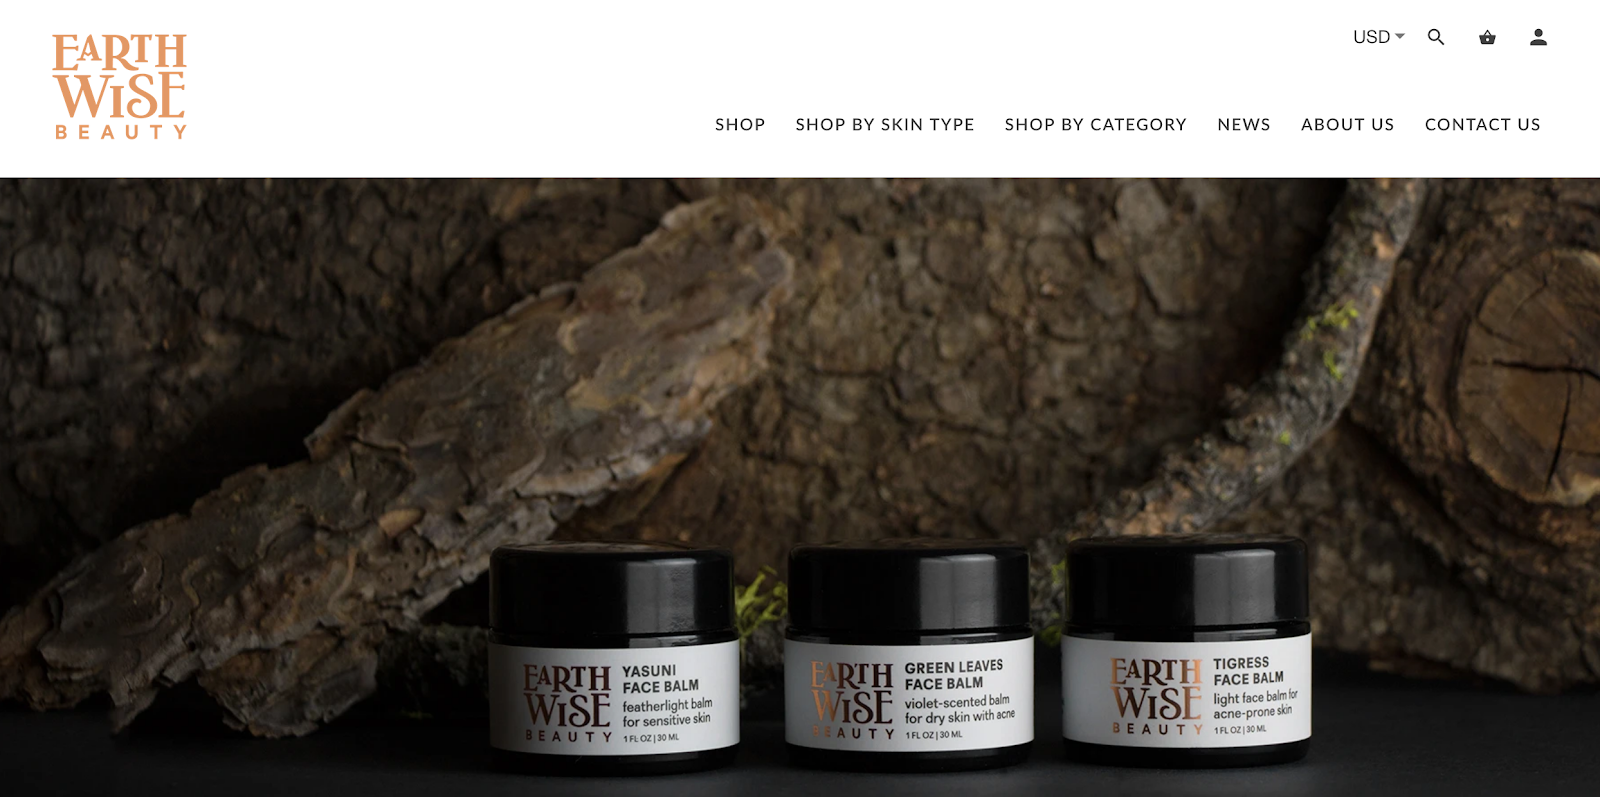 Earth Wise Beauty | Organic Skincare Products